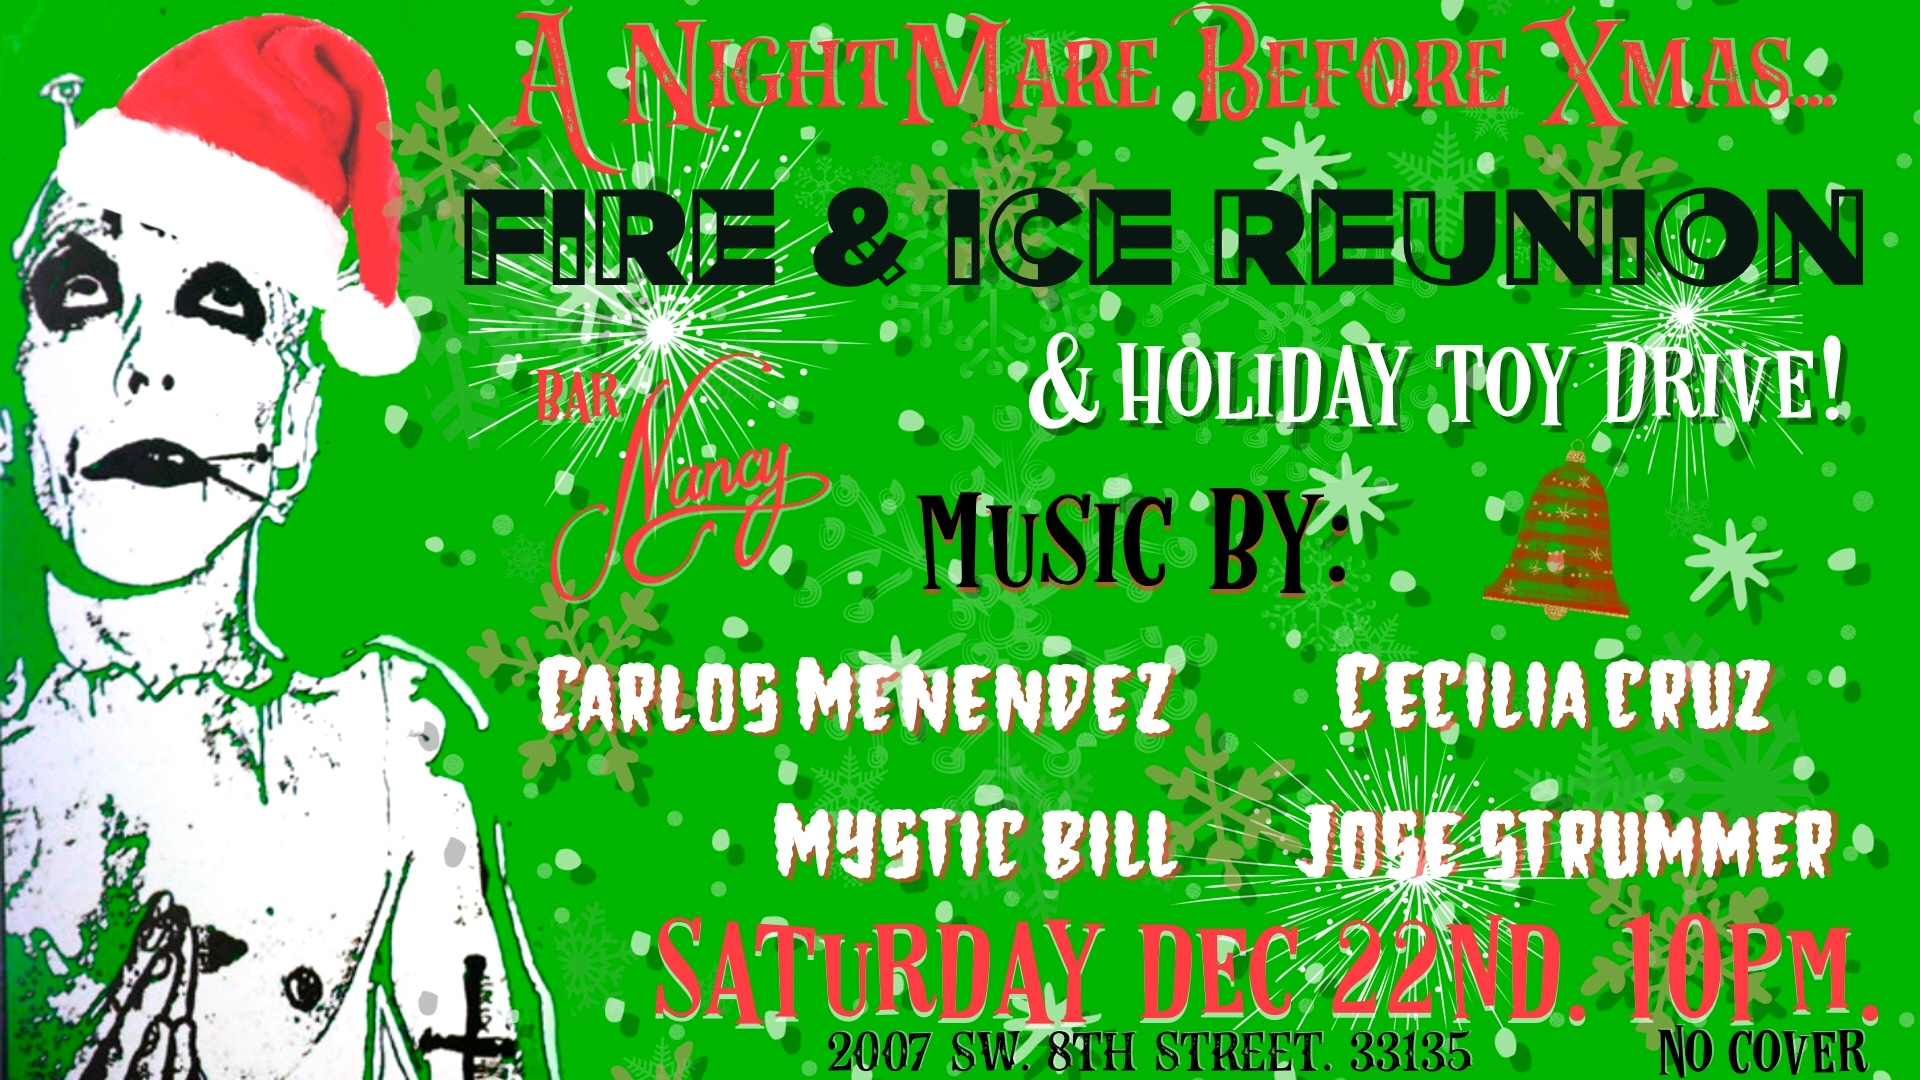 FIRE & ICE REUNION - A NIGHTMARE BEFORE XMAS - HOLIDAY TOY DRIVE - MUSIC BY CARLOS MENENDEZ - CECILIA CRUZ - MYSTIC BILL -JOSE STRUMMER - DEC 22 - 10PM